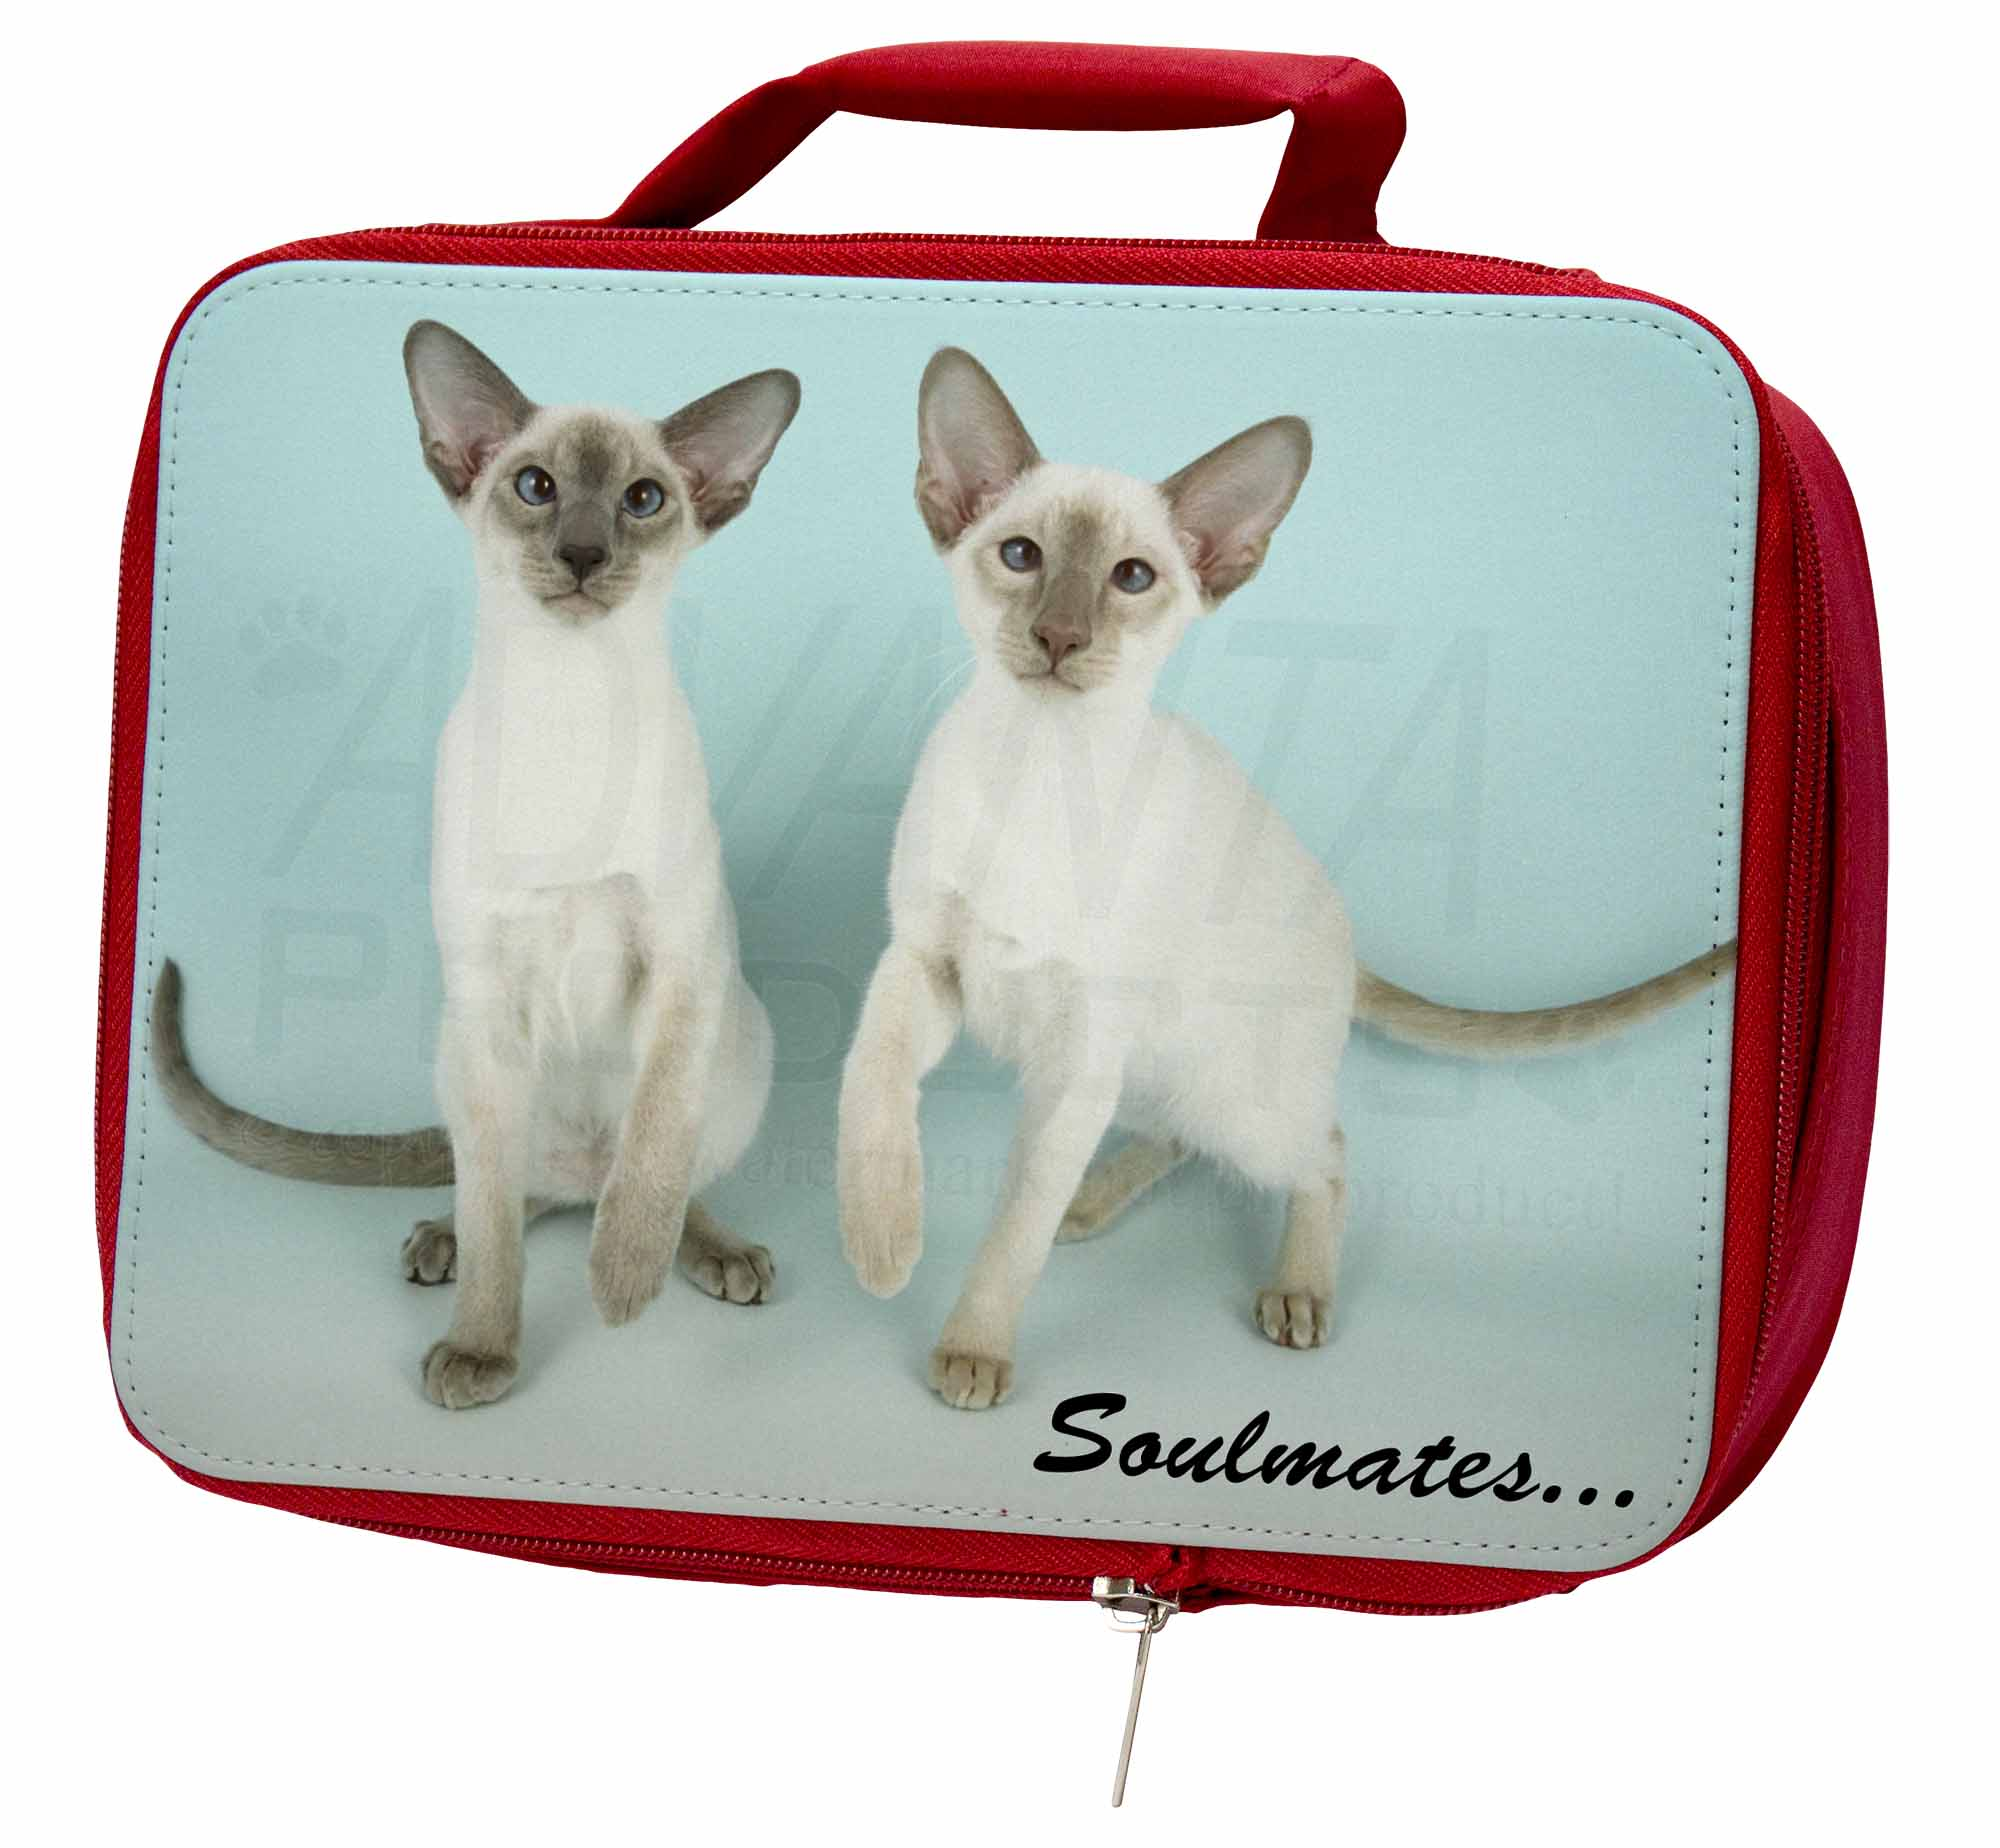 Siamese Cats Insulated 'Soulmates' Sentiment Insulated Cats Red School Lunch Box/Pic, SOUL-2LBR cab4ad